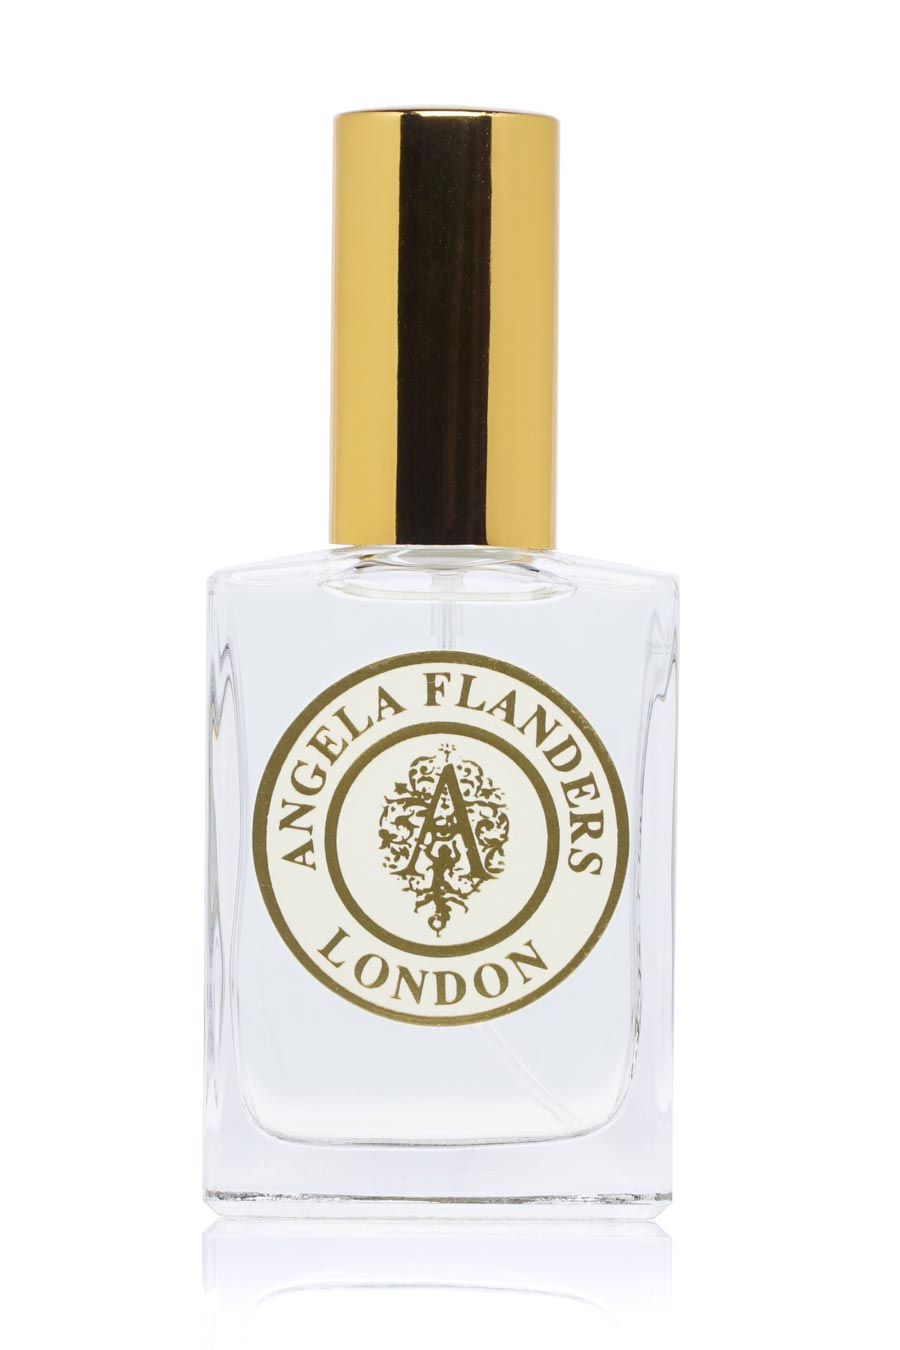 Angela Flanders White Roses Eau de Toilette 30ml